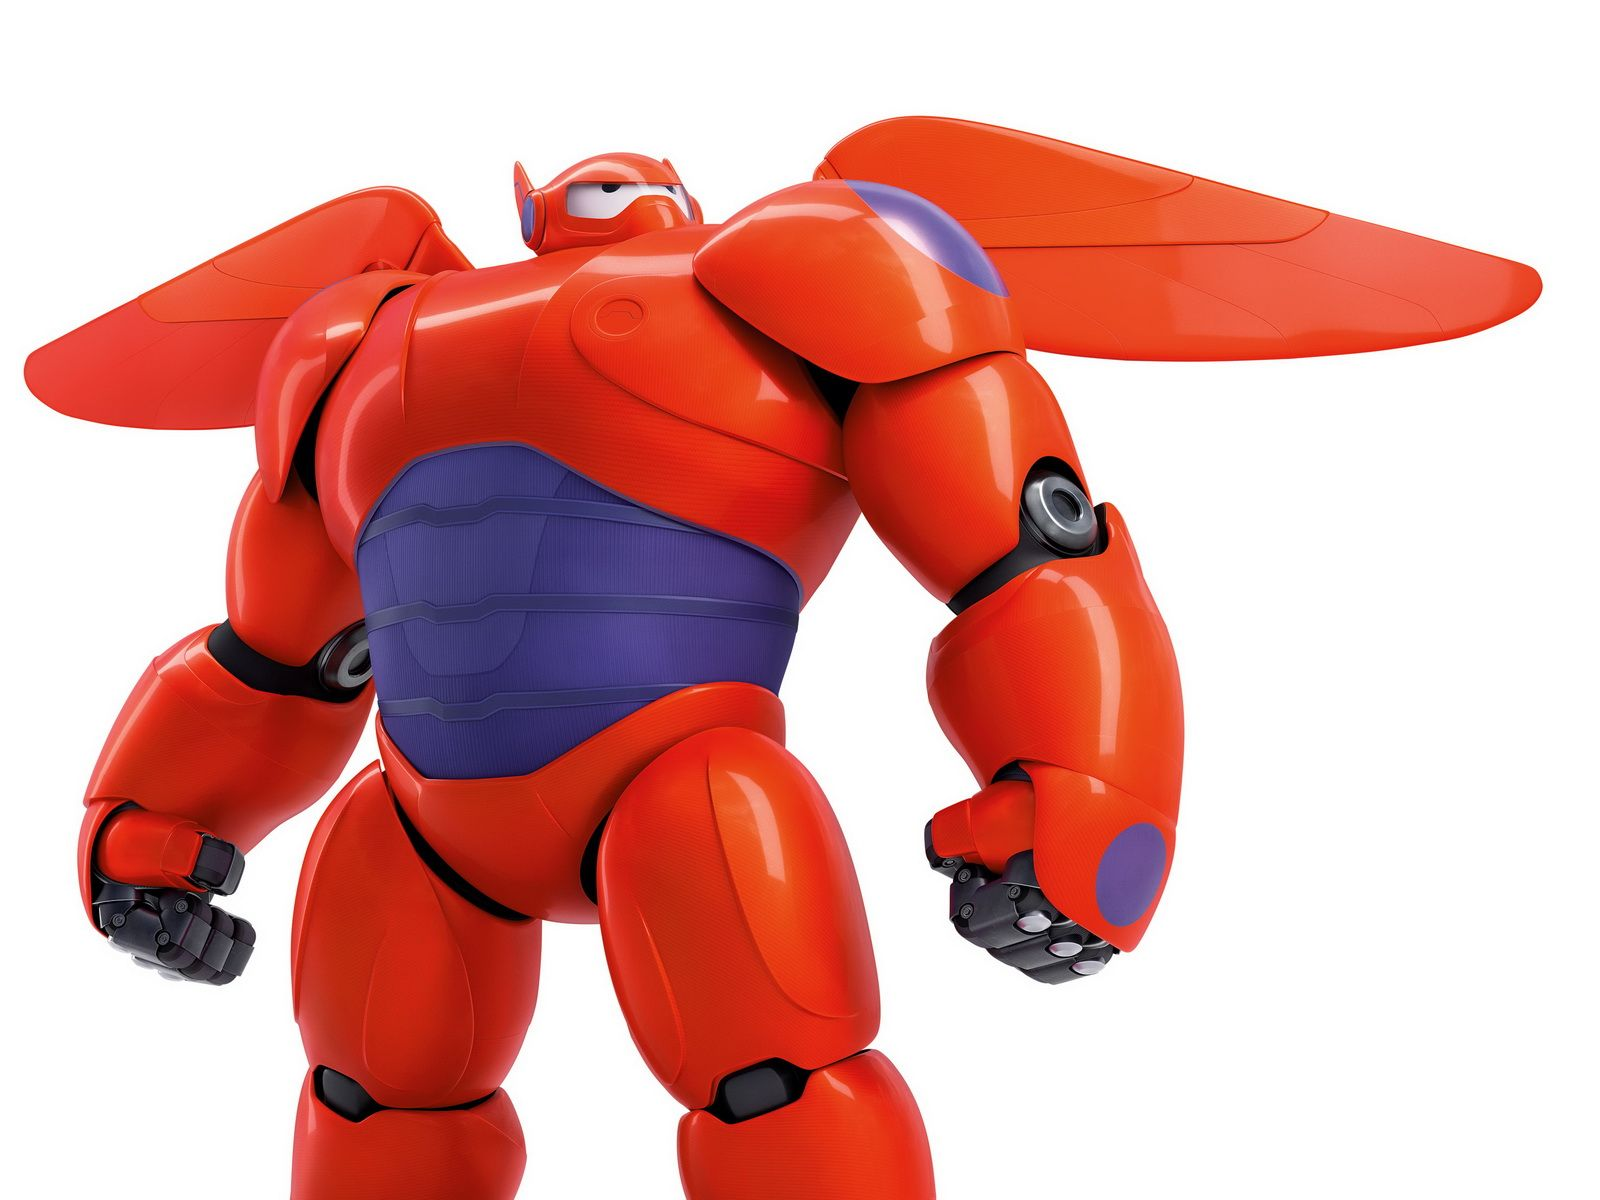 Big hero 6 credits scene they are not only books - Big Hero 6 Big Hero 6 Big Hero 6 Wallpaper